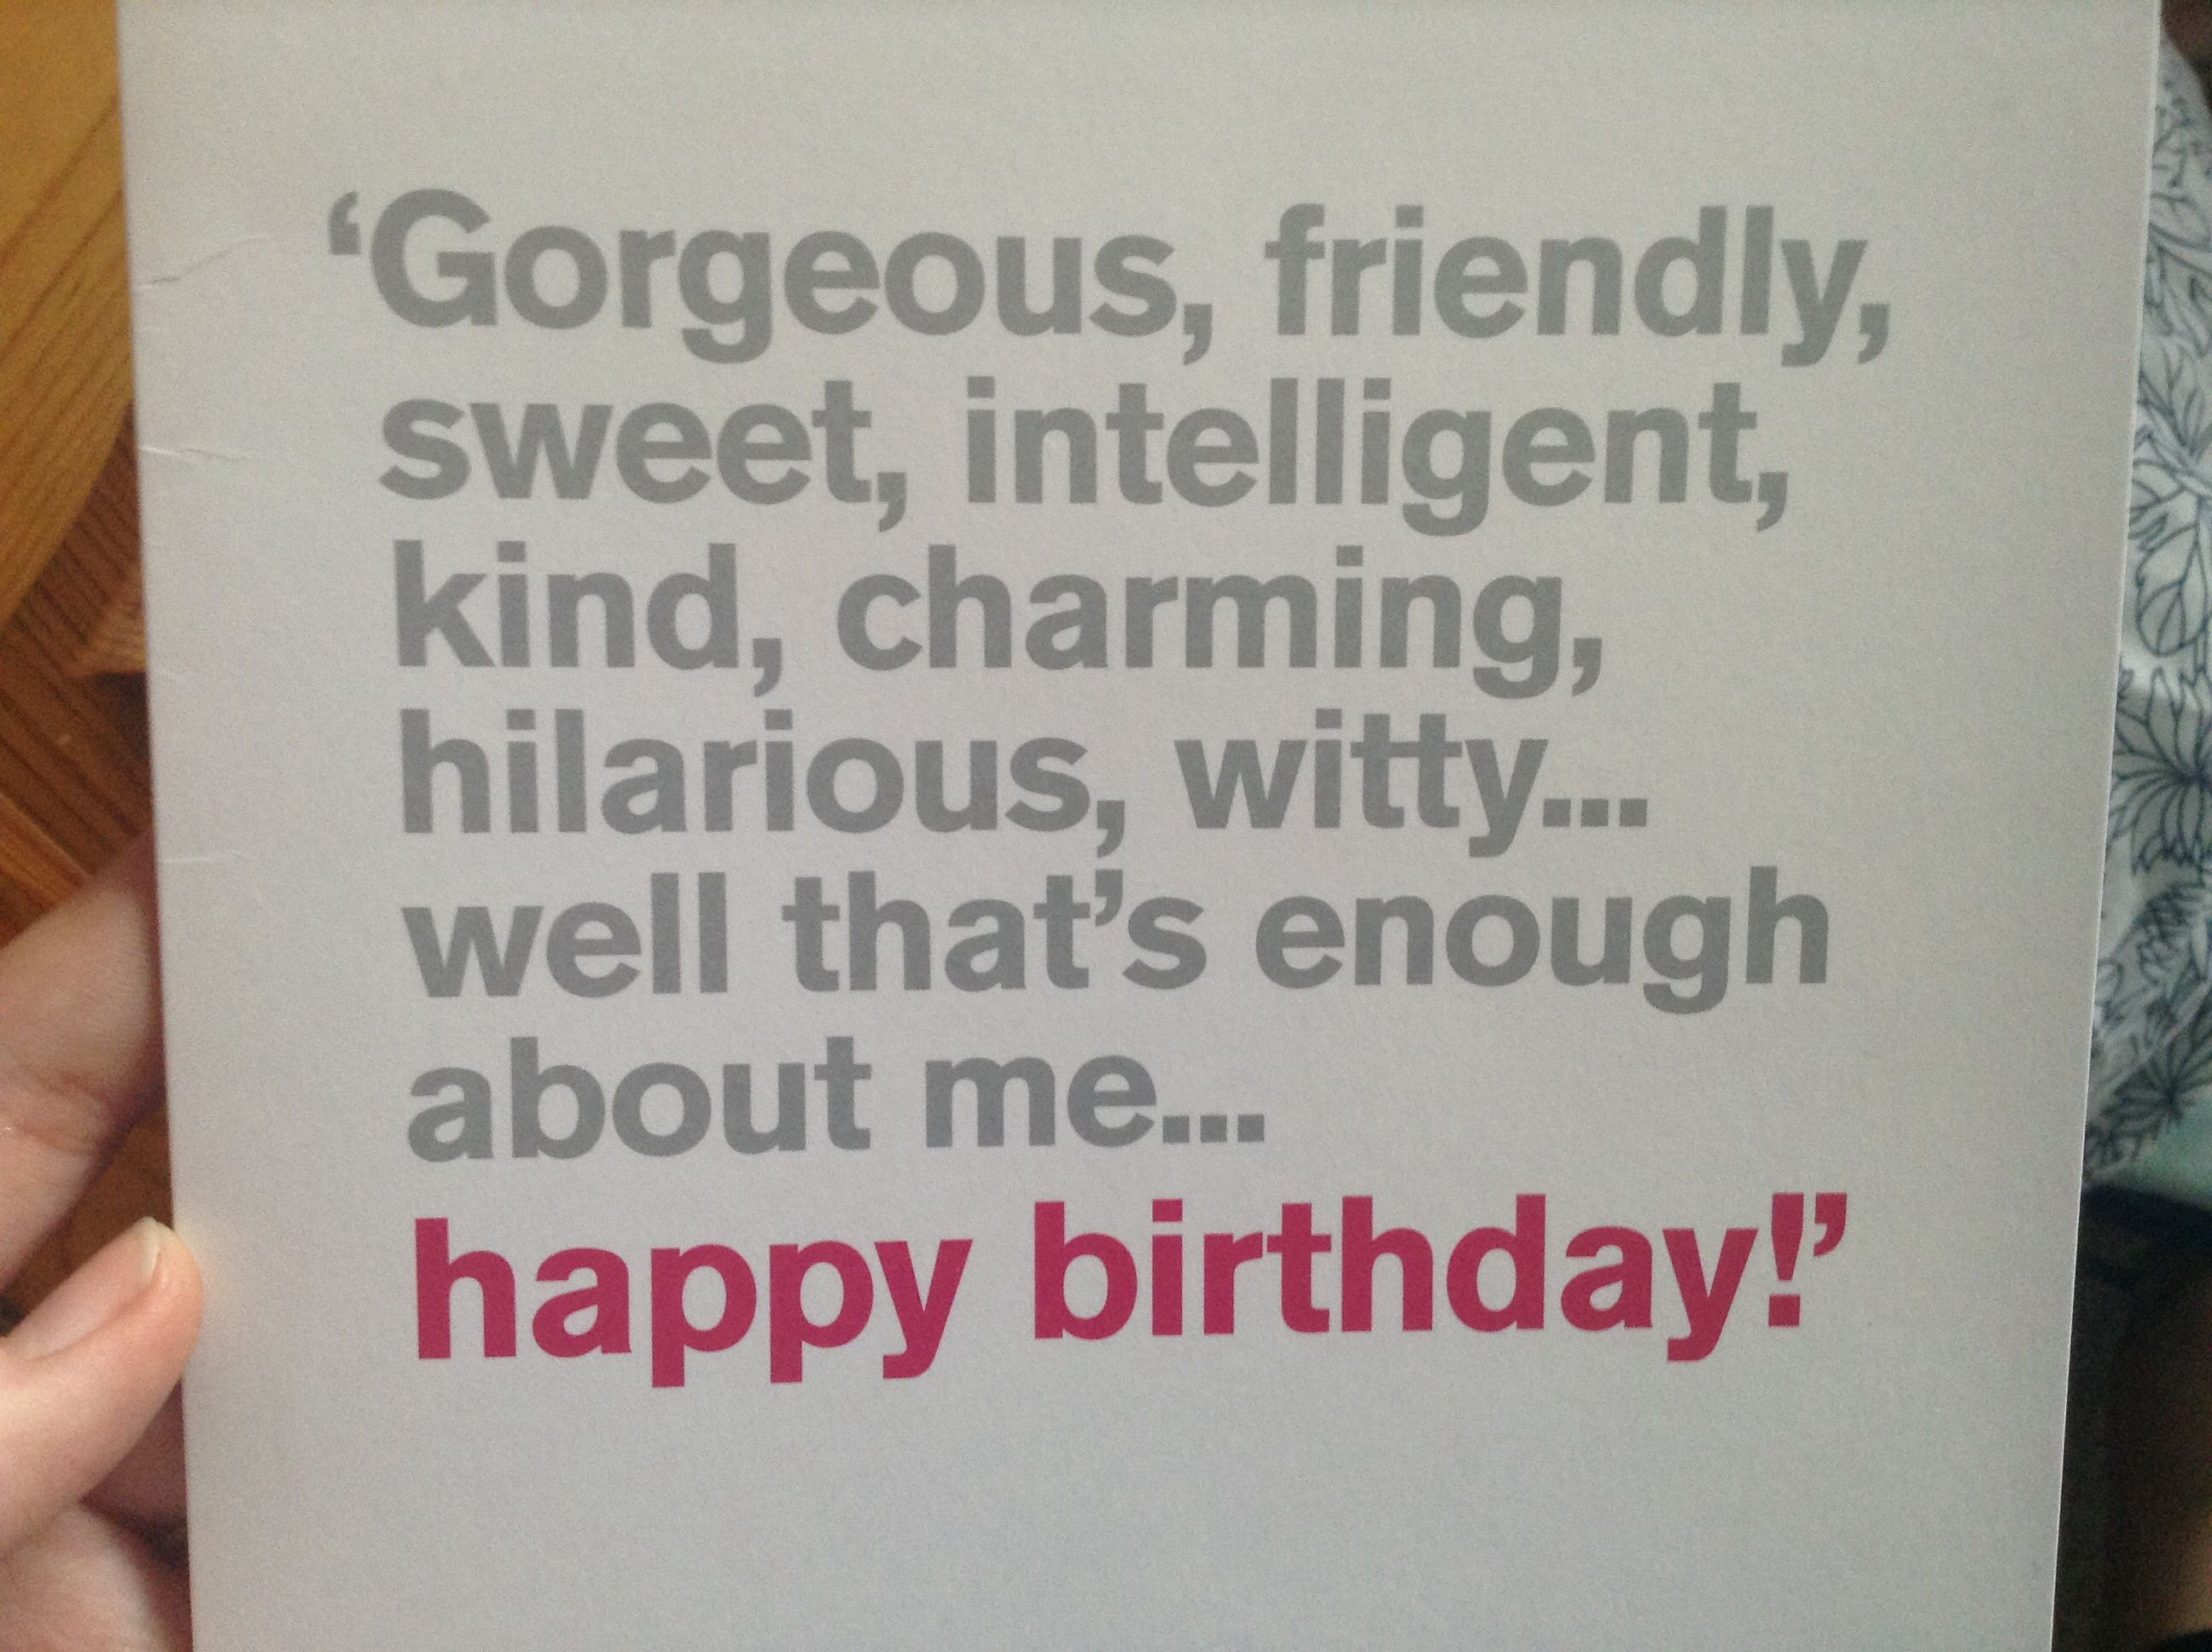 Funny Happy Birthday Quote:)